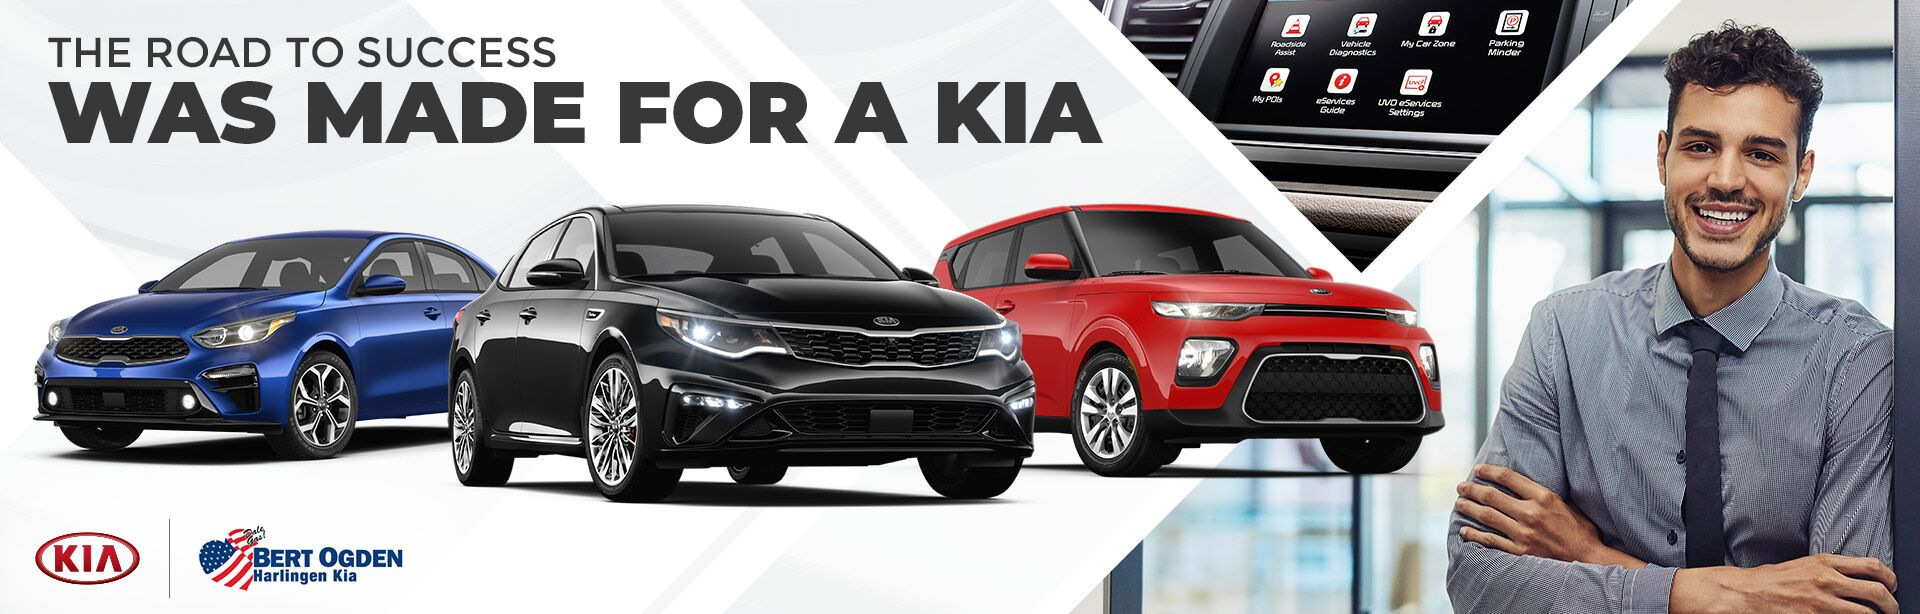 Vehicles for Self-Starters | Bert Ogden Harlingen Kia | Harlingen, TX